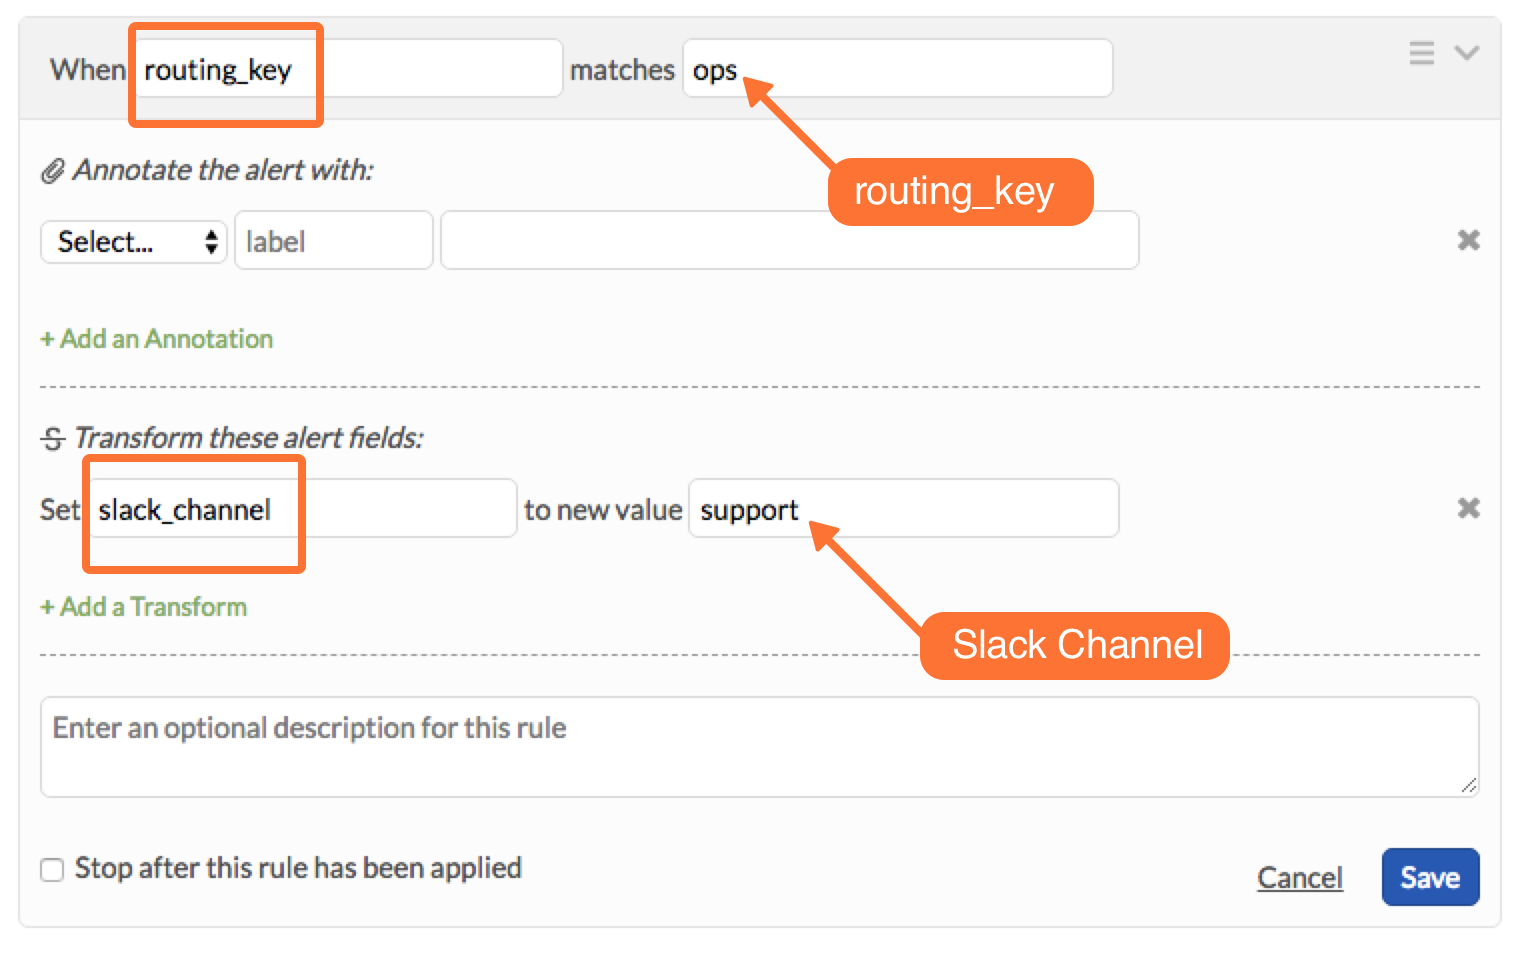 create rules to associate your Slack channels to their appropriate routing_keys in VictorOps